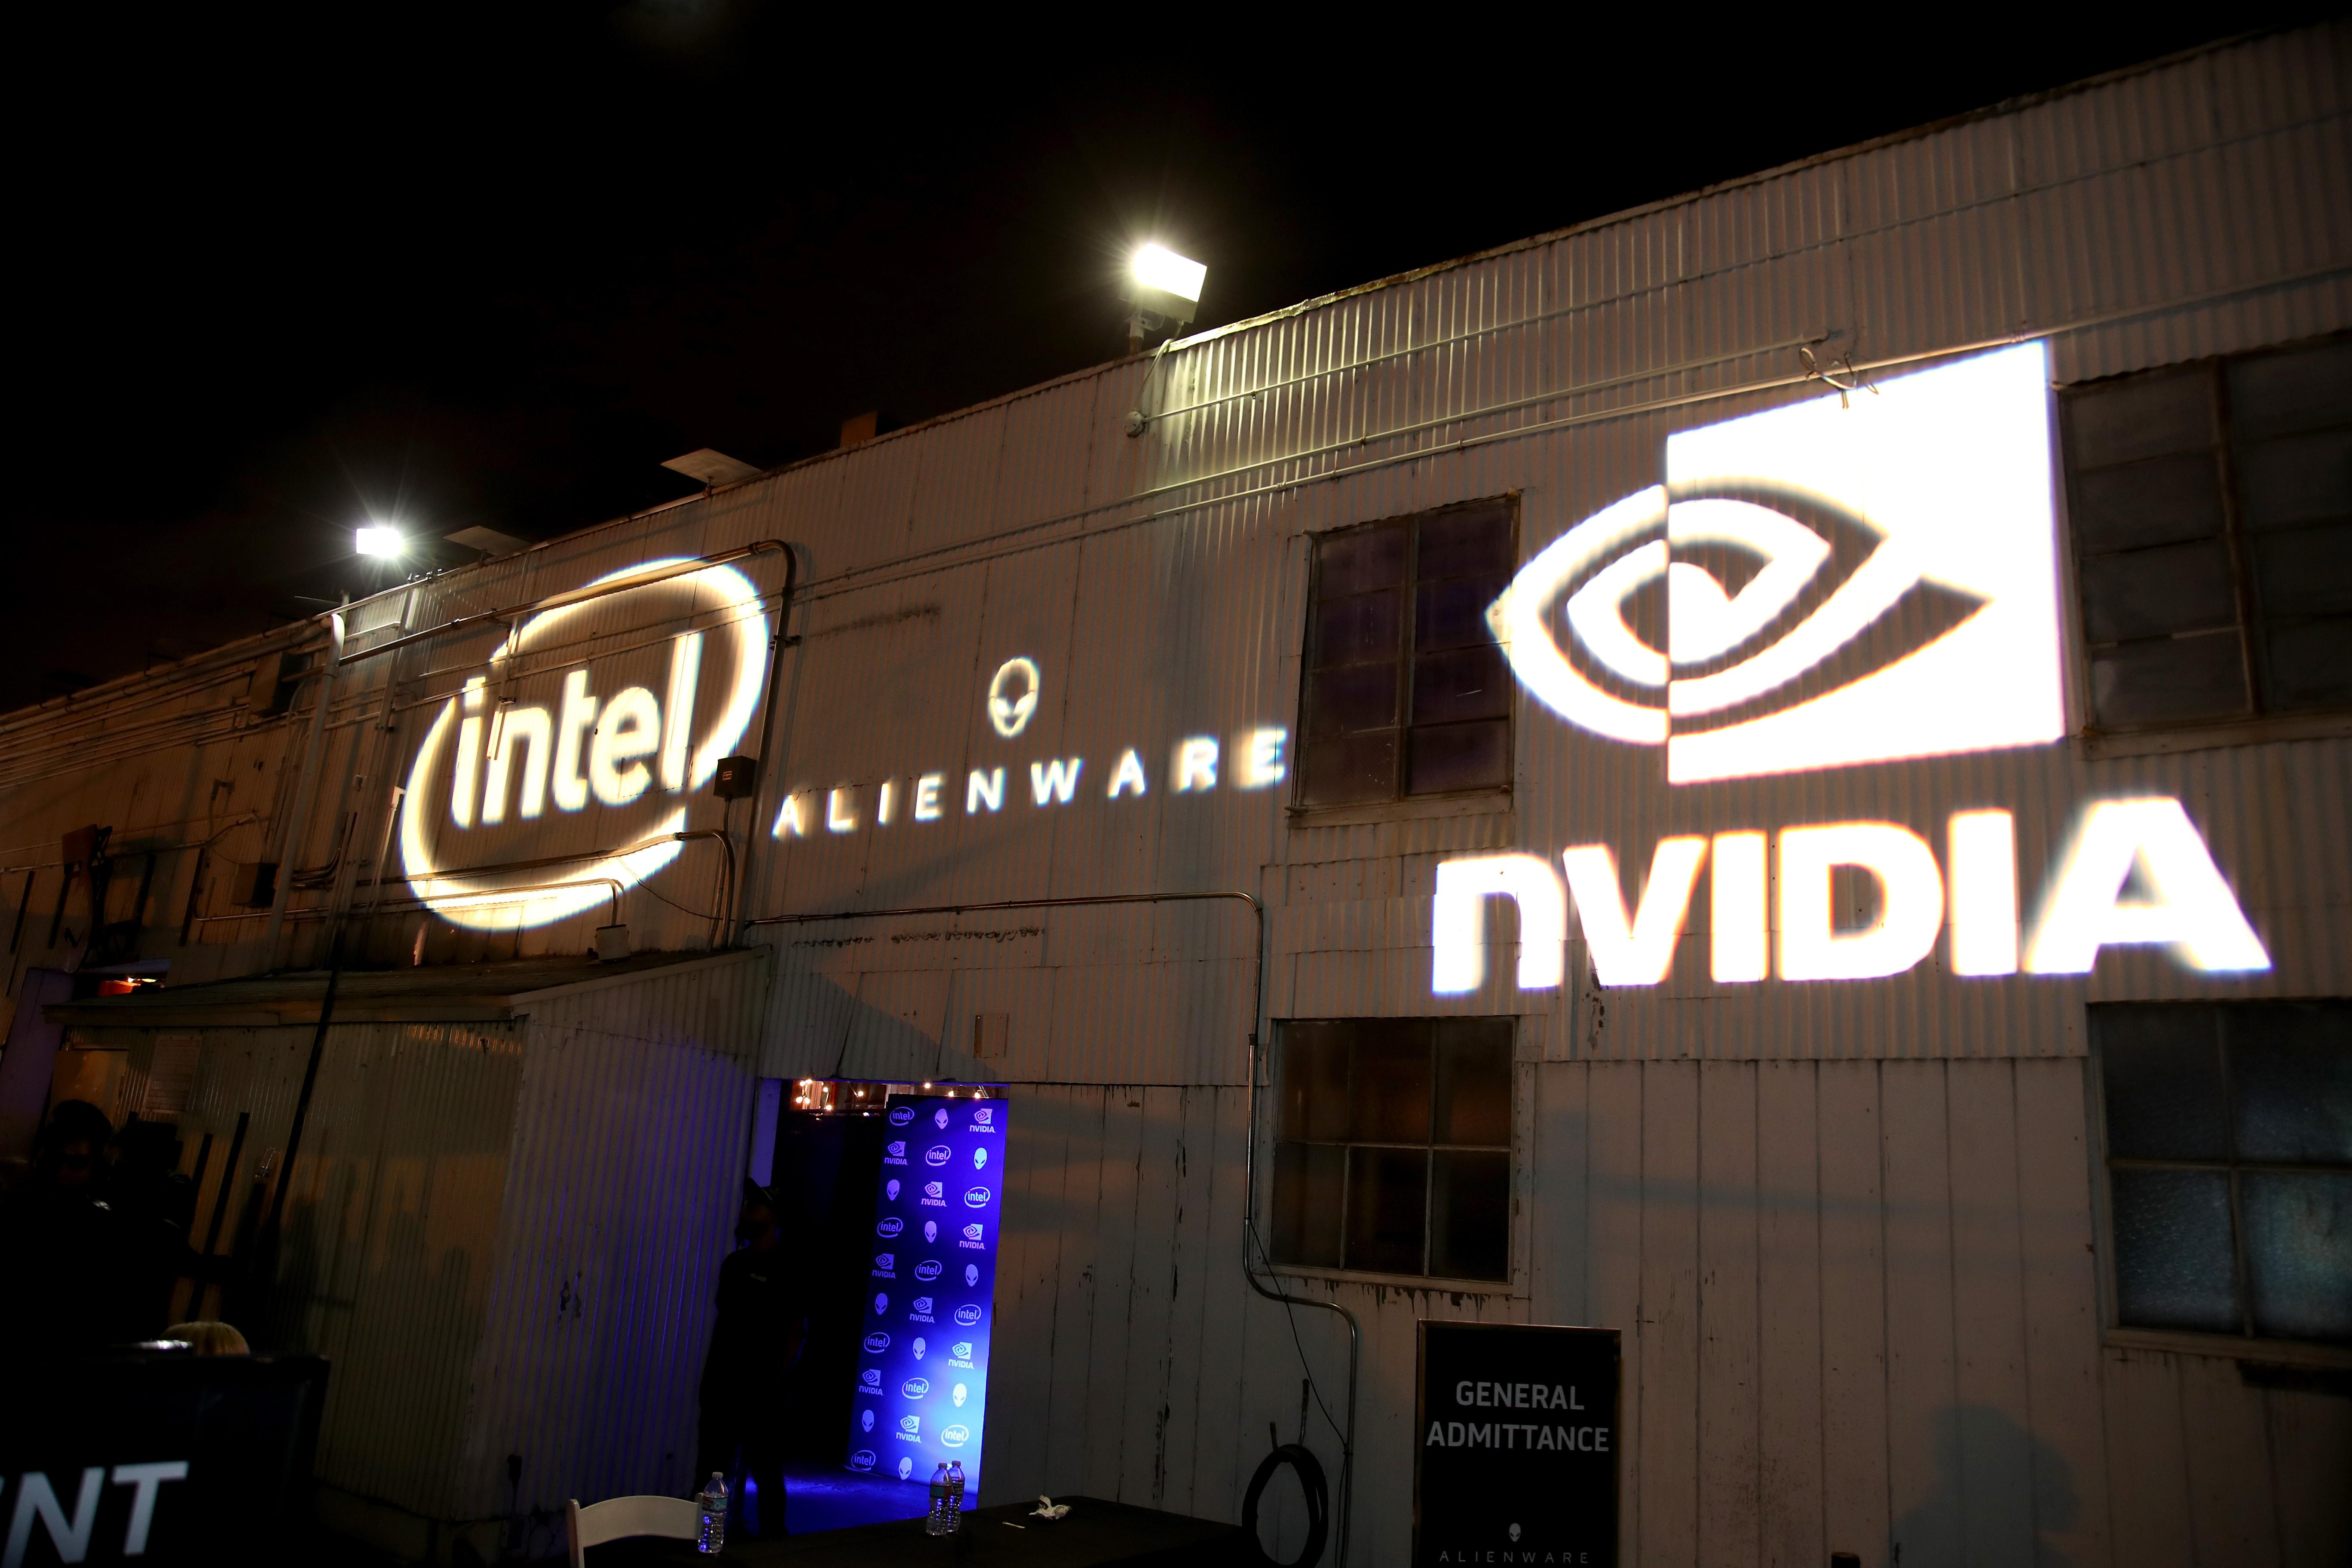 Intel Alienware NVIDIA